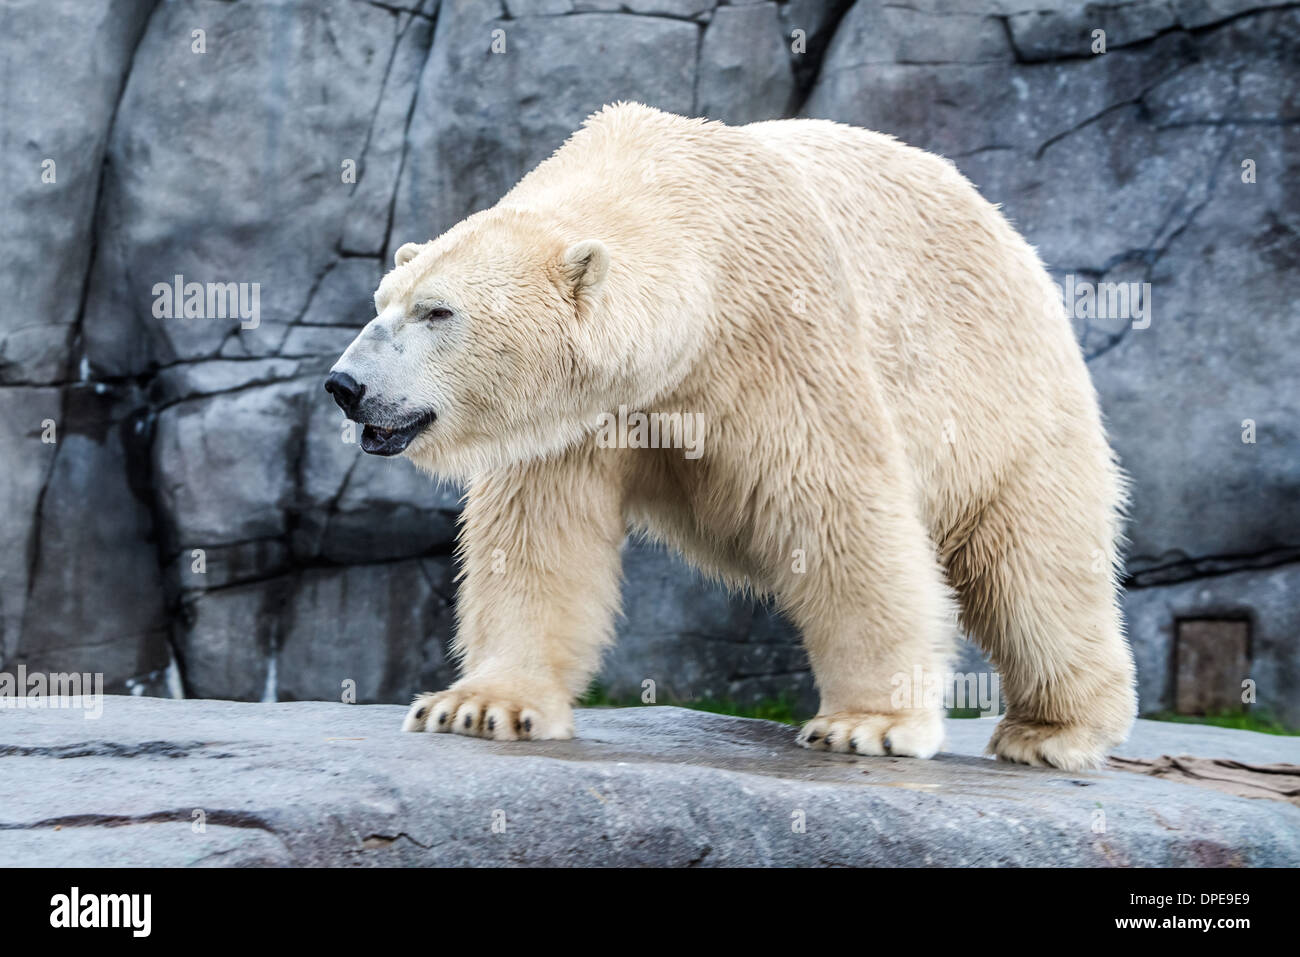 fattened white bear with the rocky bacground - Stock Image